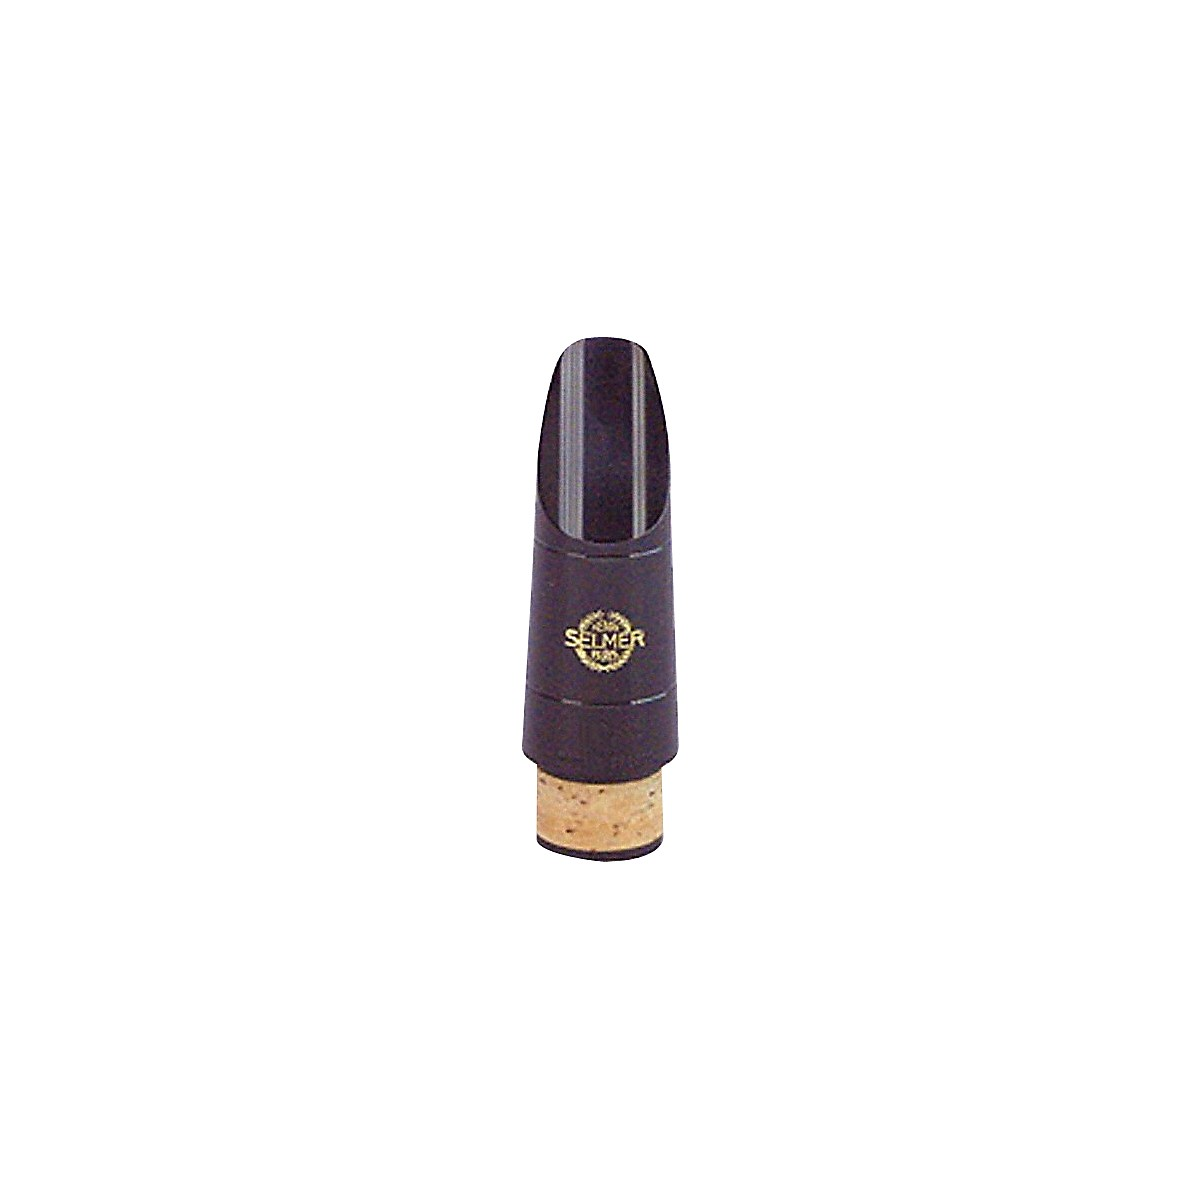 Selmer Paris Eb Clarinet Mouthpiece